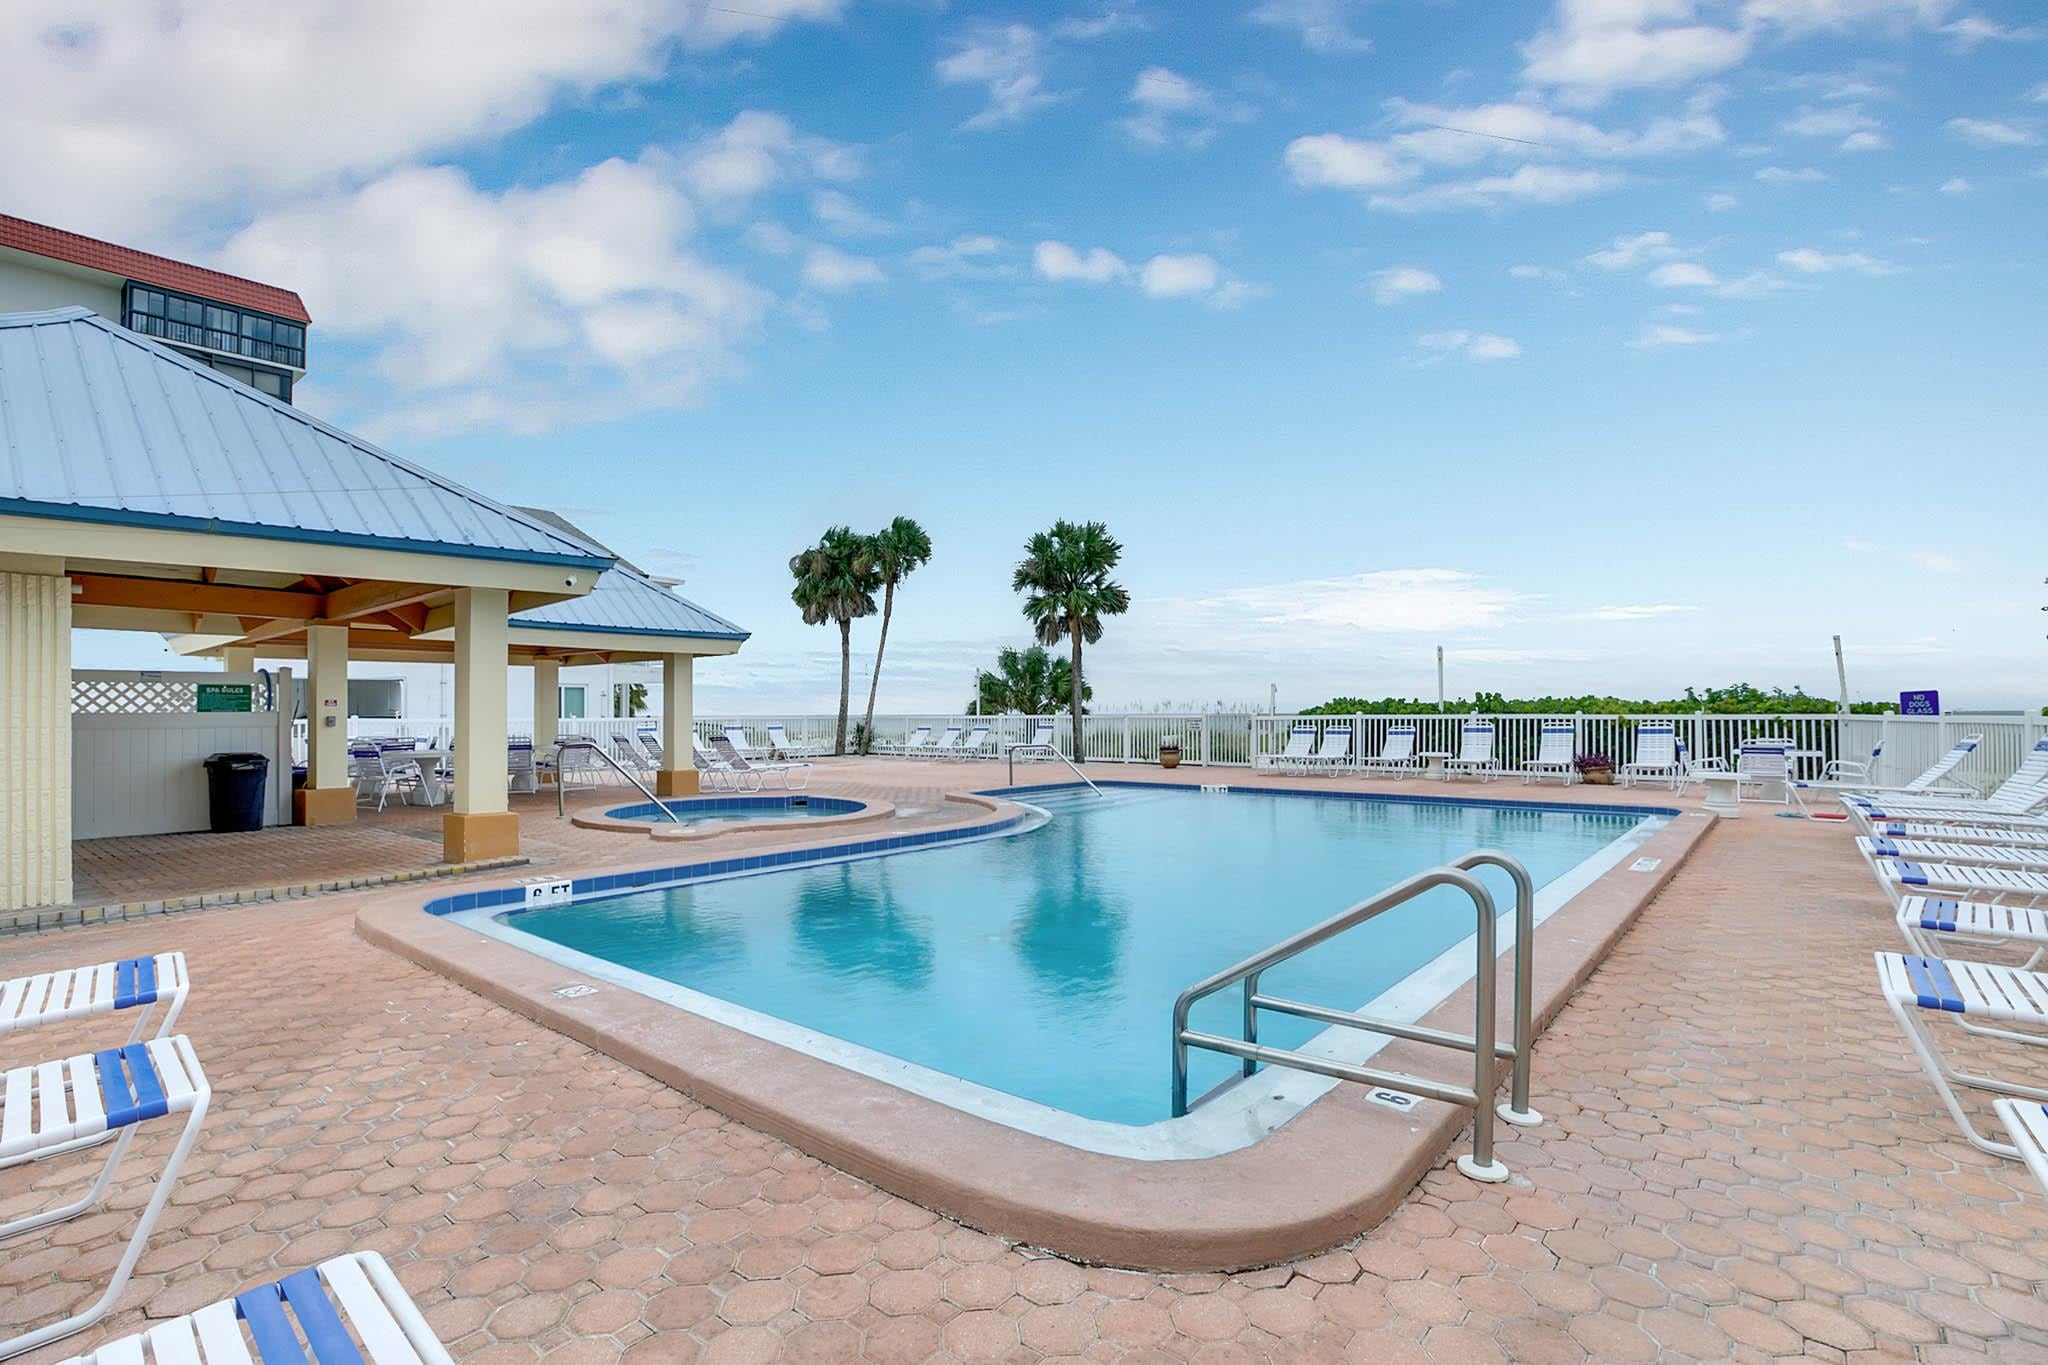 During your stay, you'll enjoy access to a Gulf-facing pool.